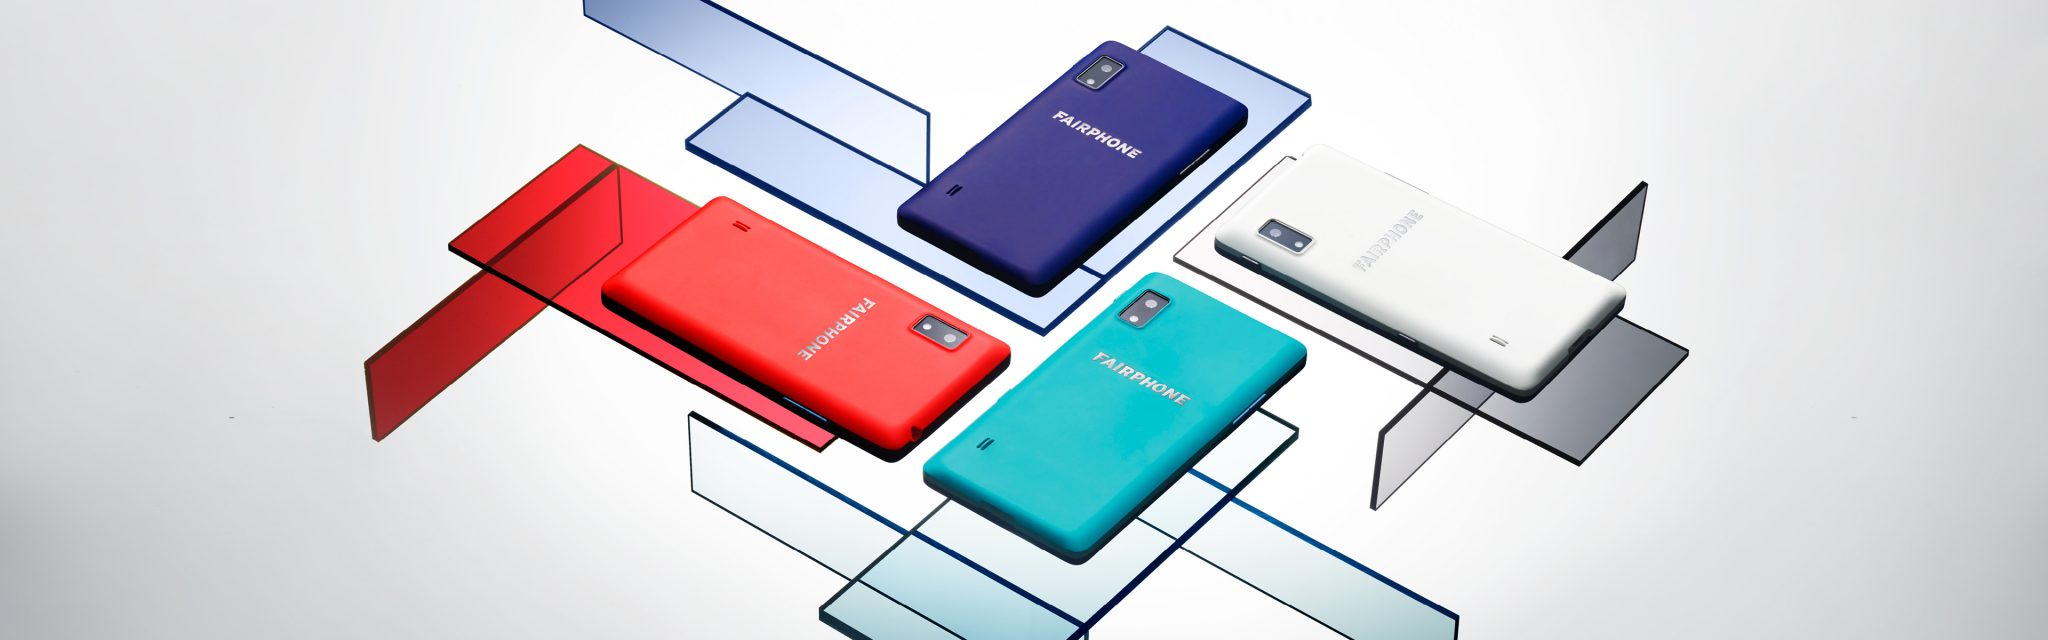 Robustes Handy Design Fairphone